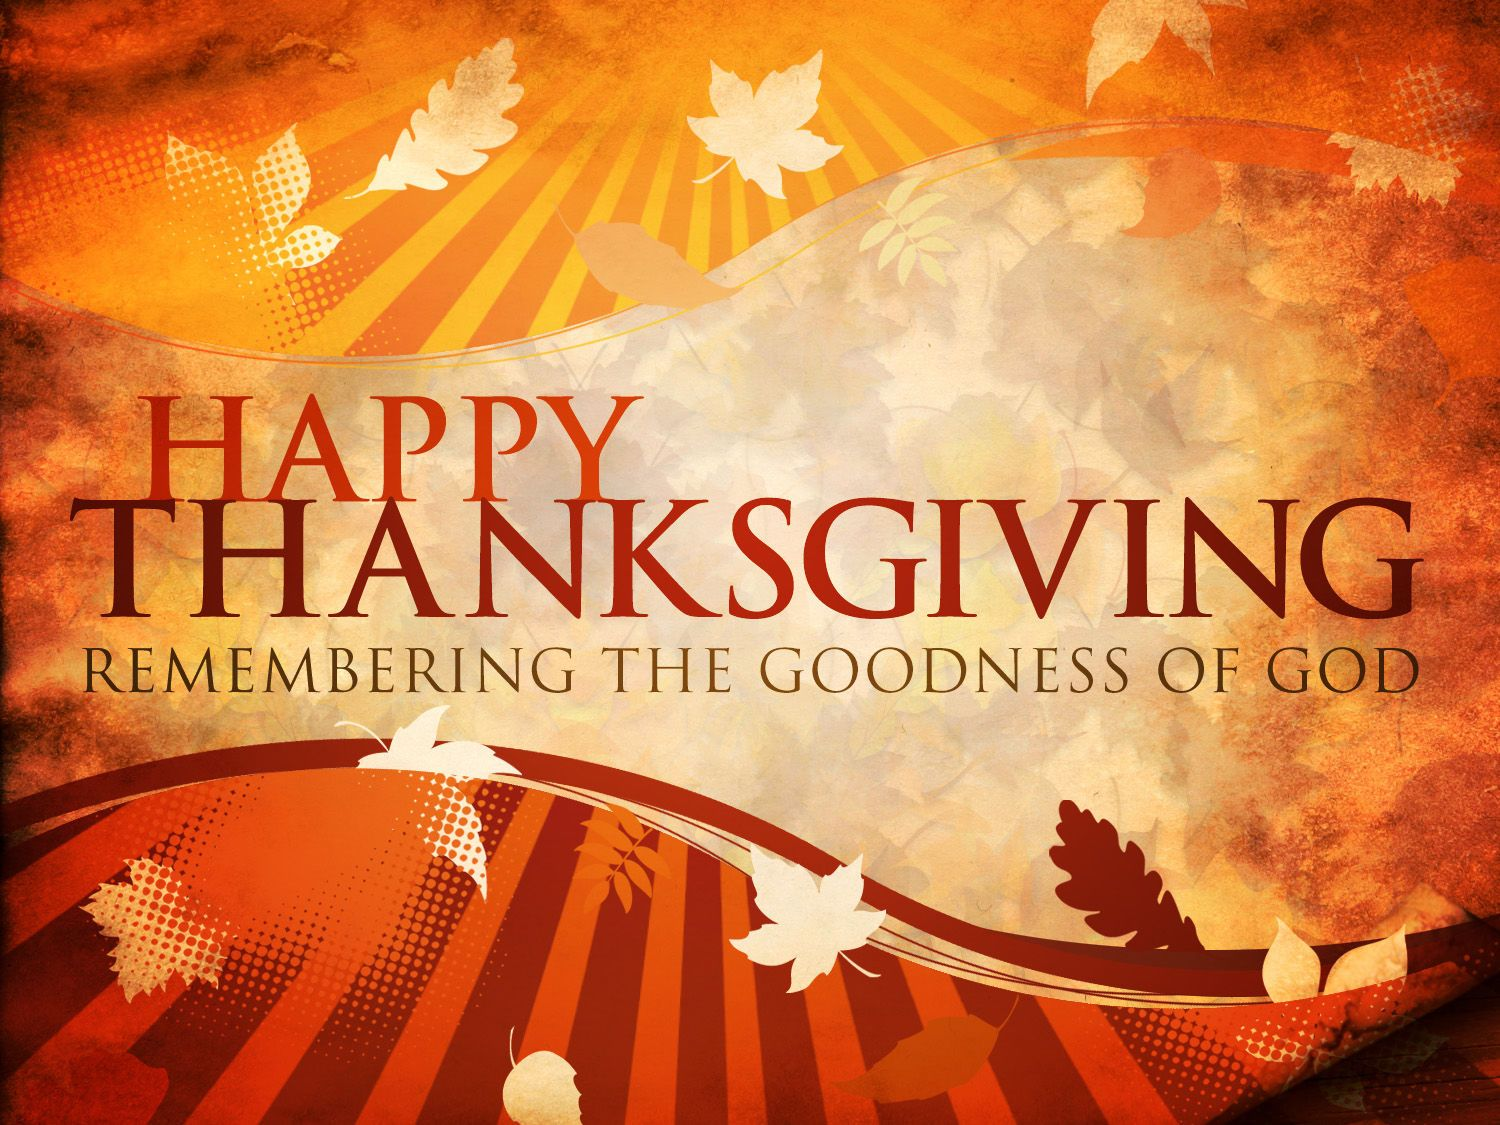 Happy Thanksgiving Remember The Goodness Of God Thanksgiving Thanksgiving Pictur Happy Thanksgiving Quotes Thanksgiving Quotes Funny Happy Thanksgiving Images